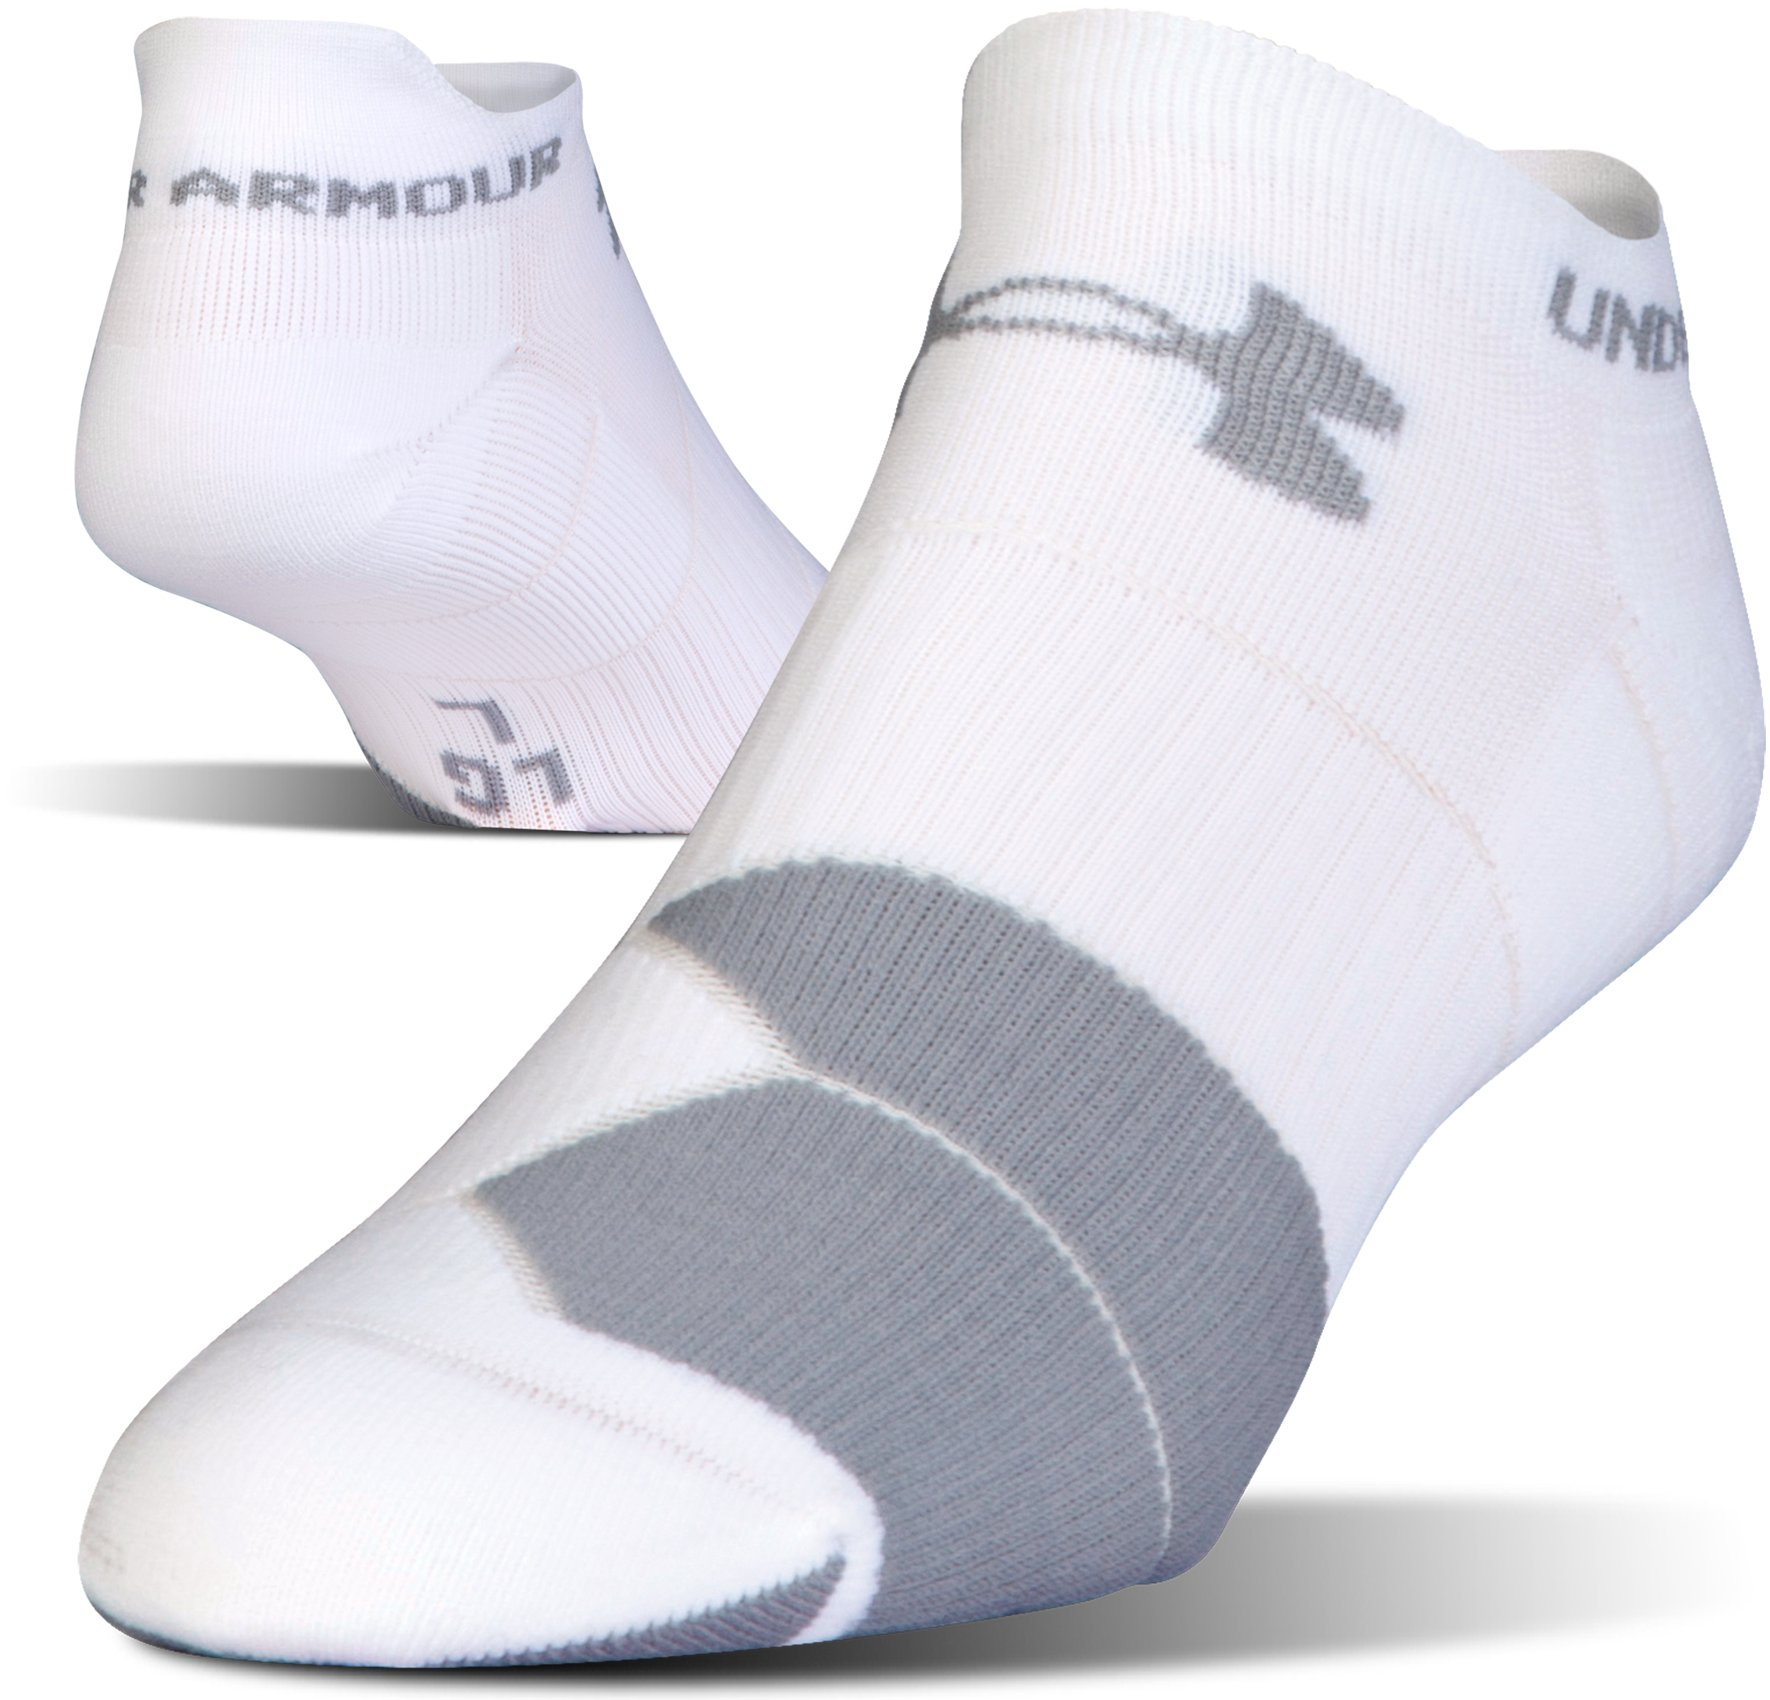 UA Run Cushion No Show Socks, White